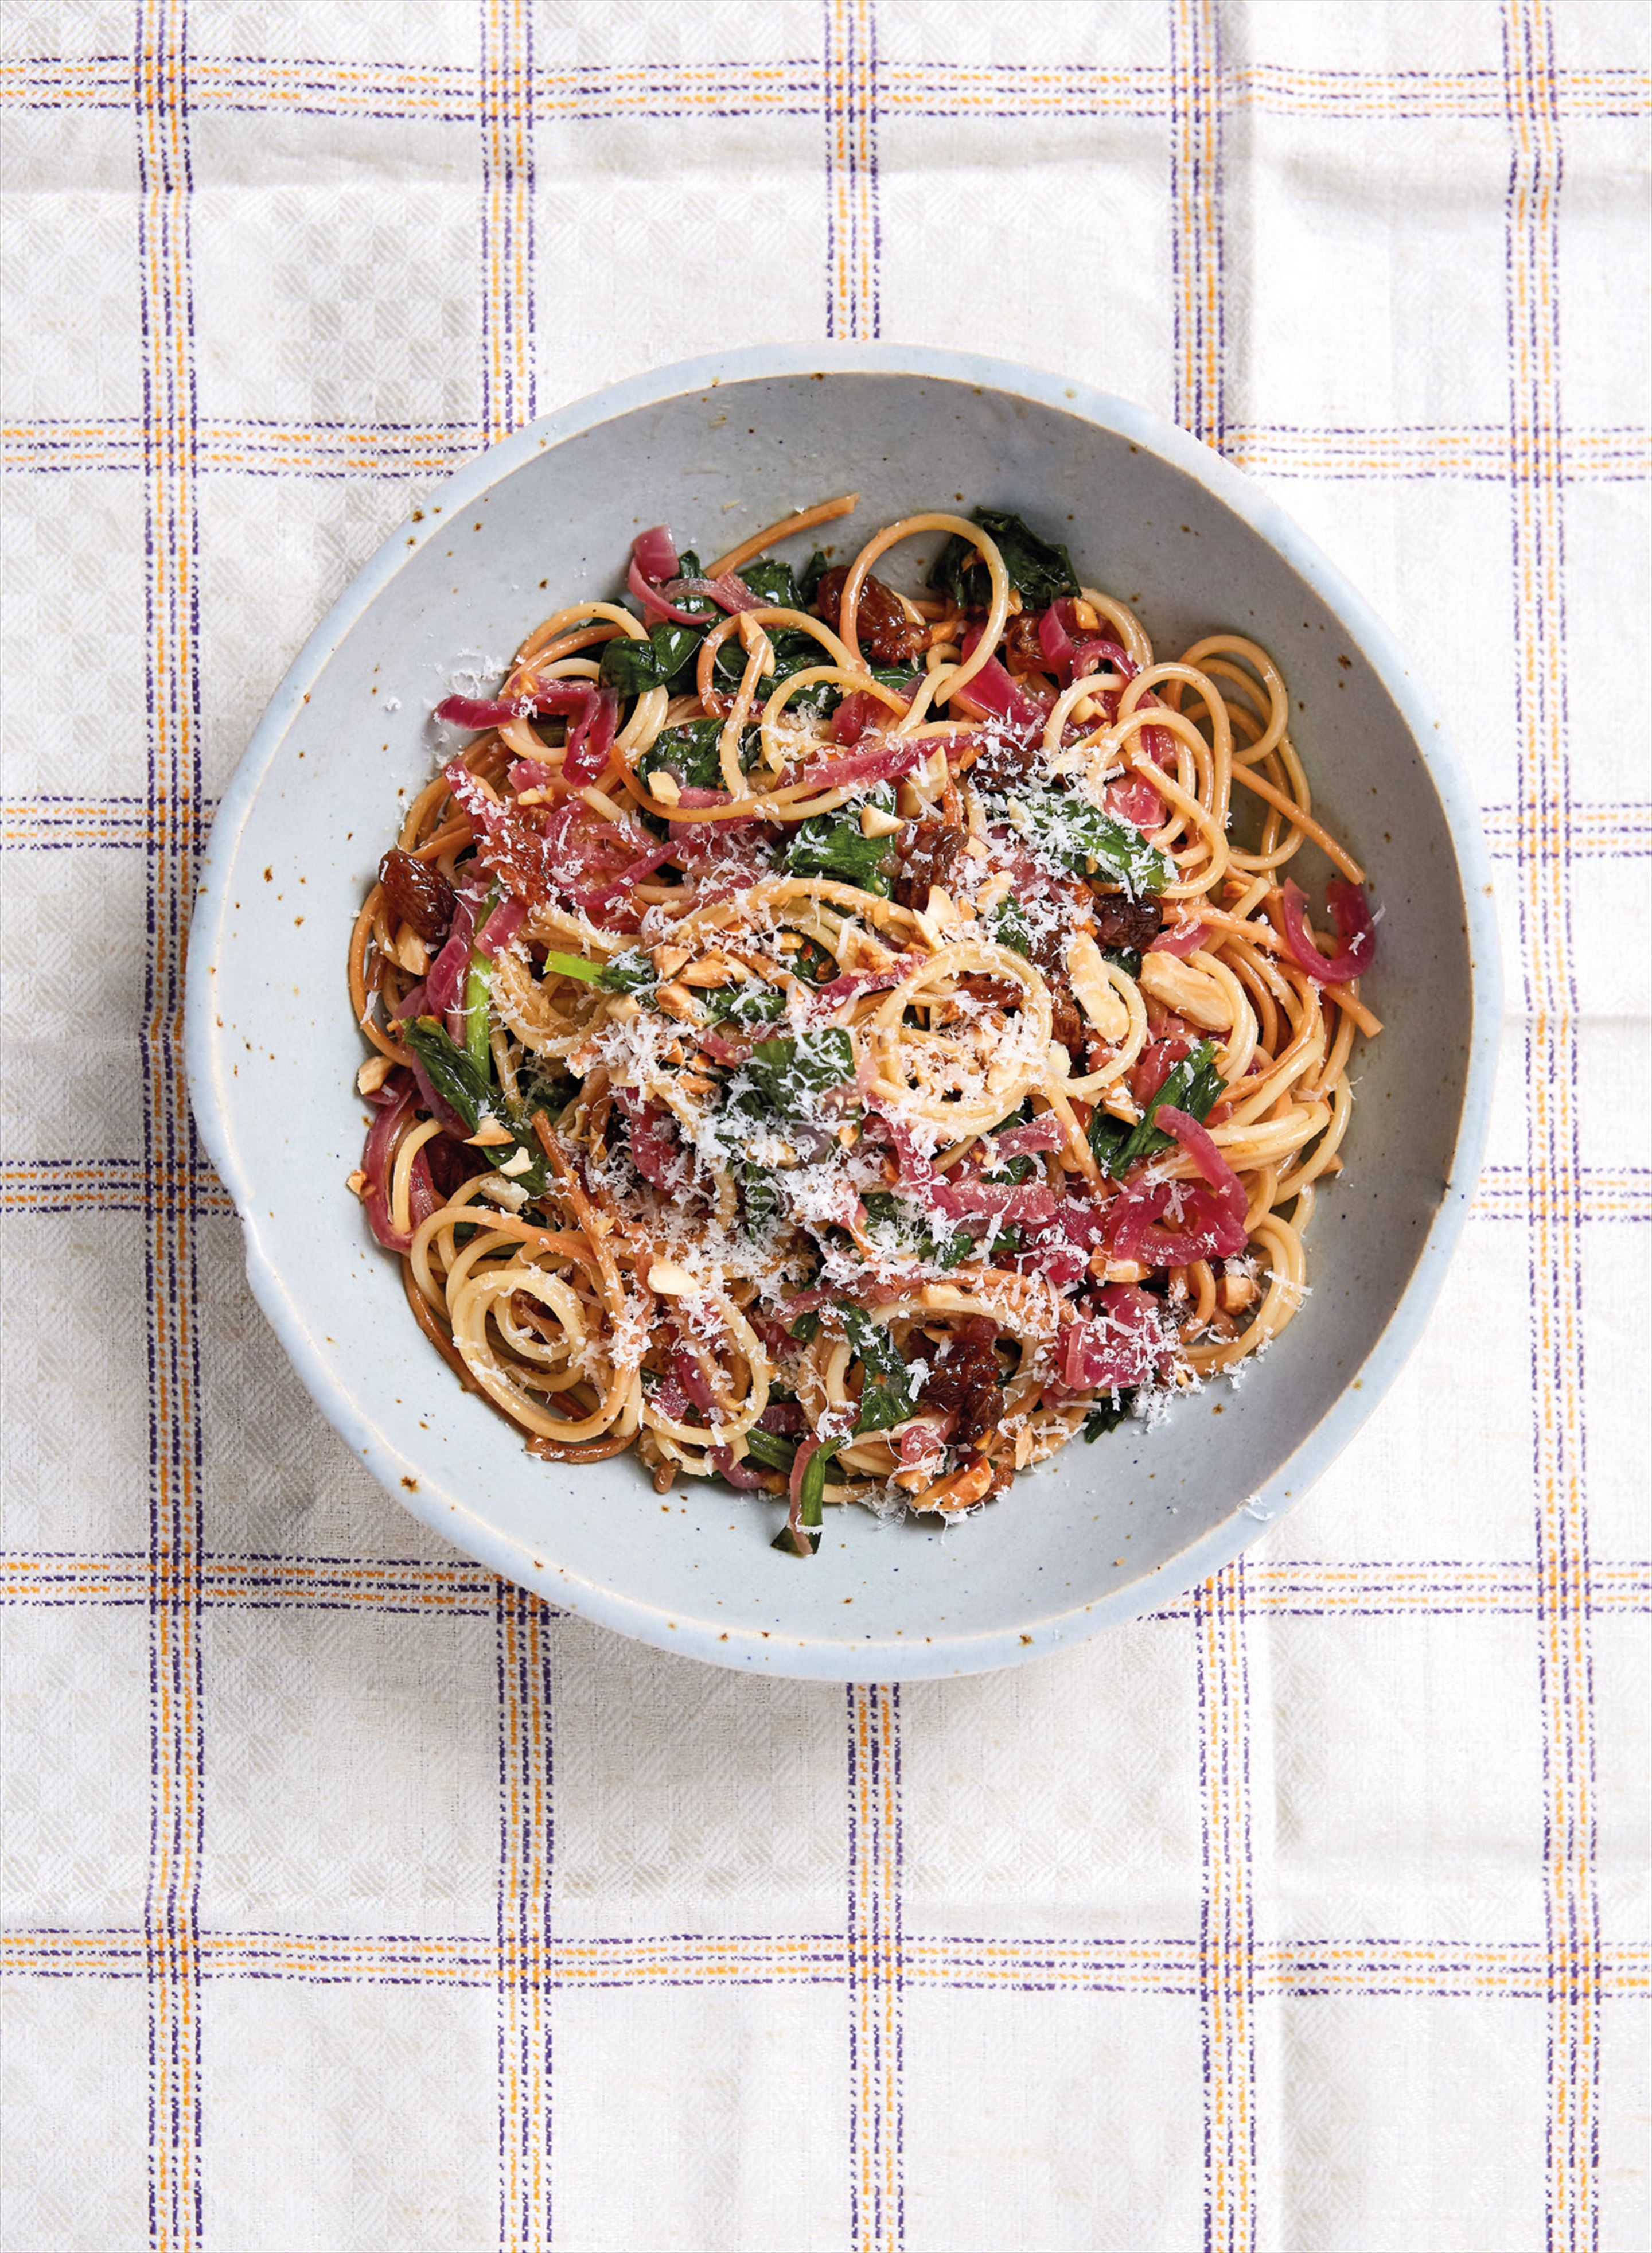 Toasted spaghetti with red onions, almonds and raisins